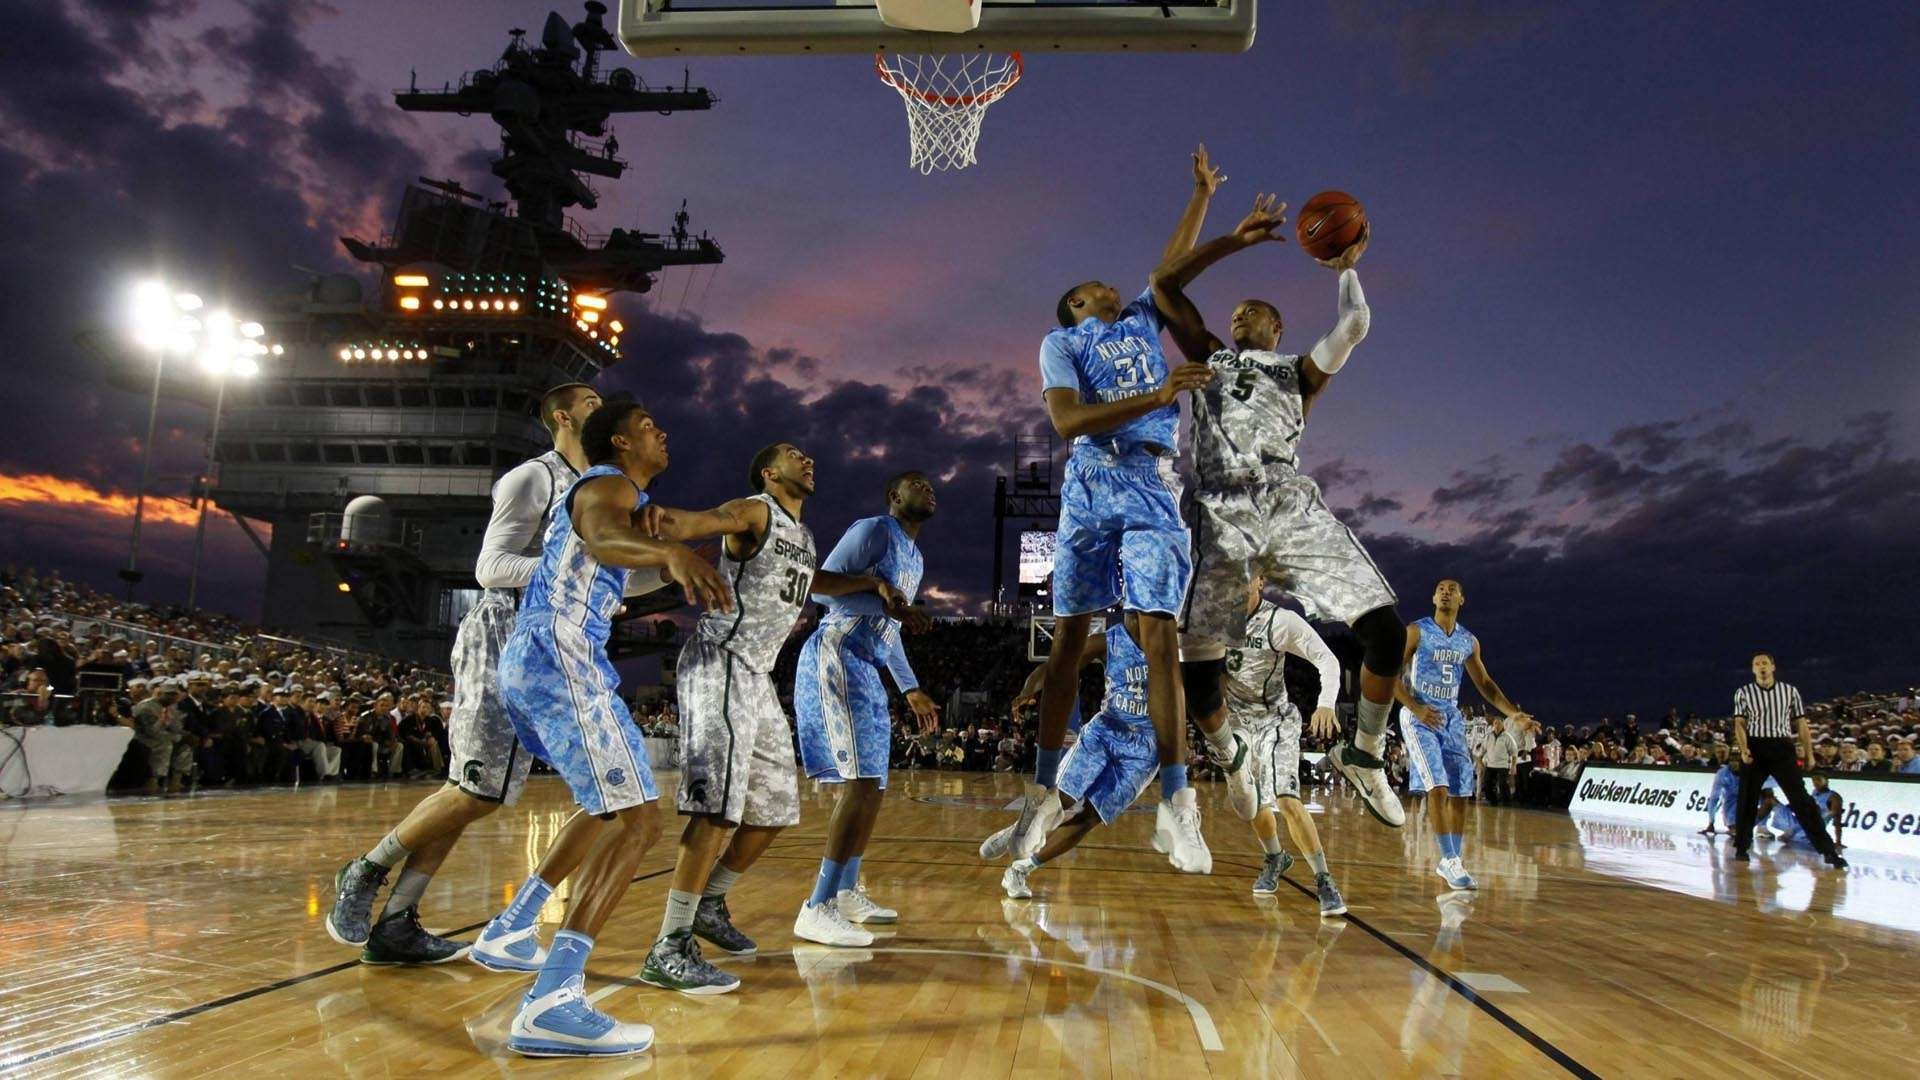 1920x1080 College basketball game on an aircraft carrier HD Wallpaper .